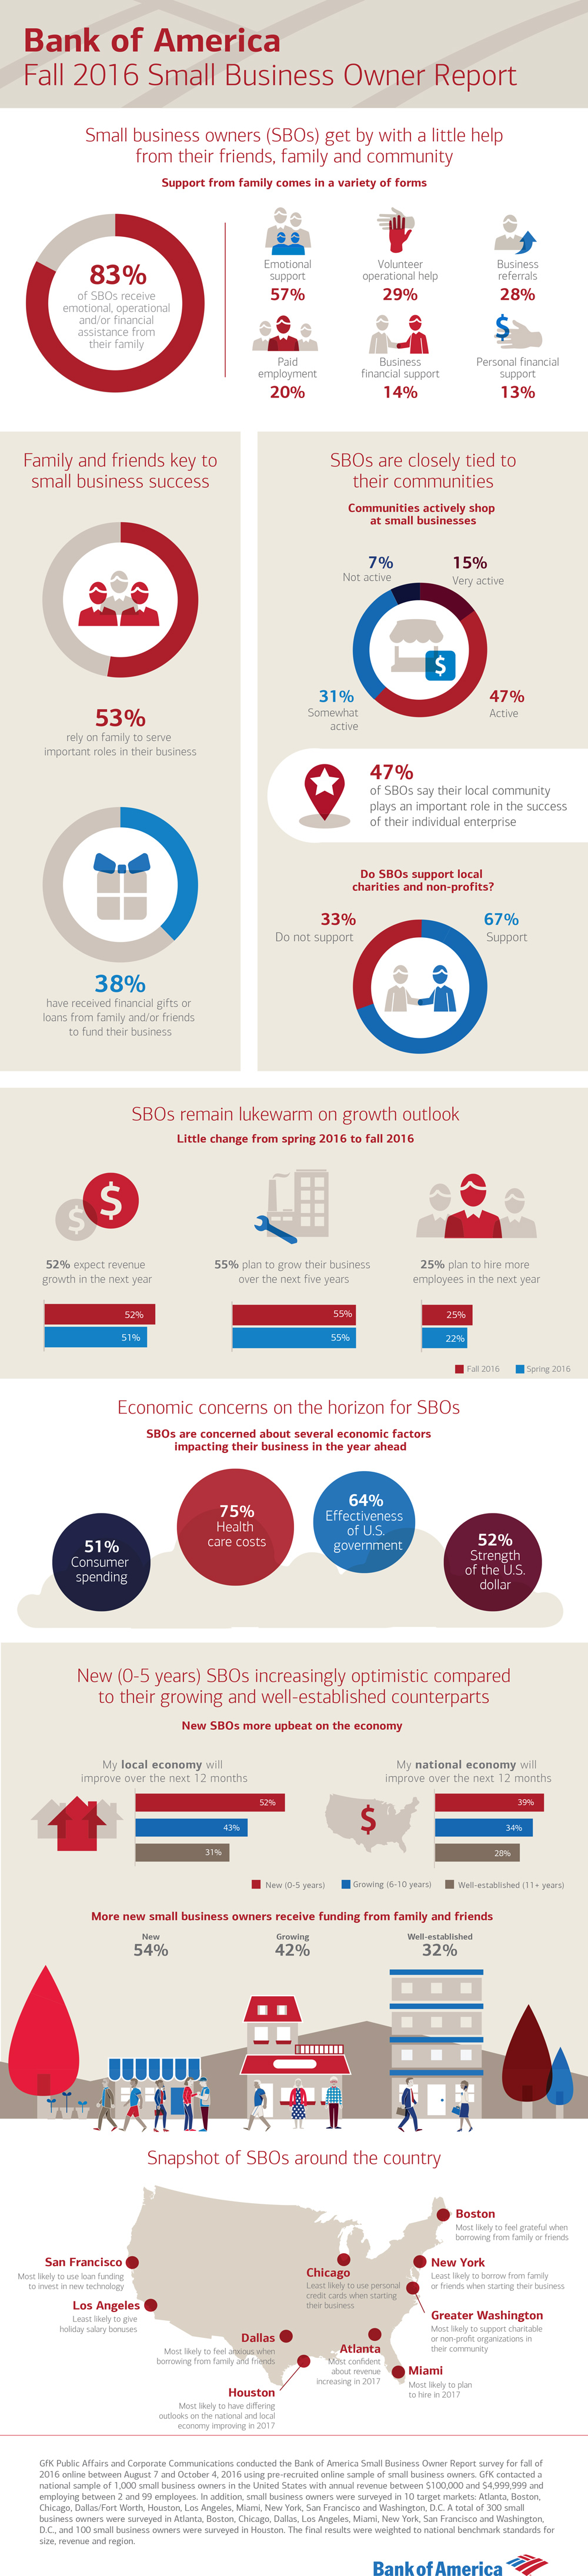 fall_2016_small_business_owner_report_infographic_-_national